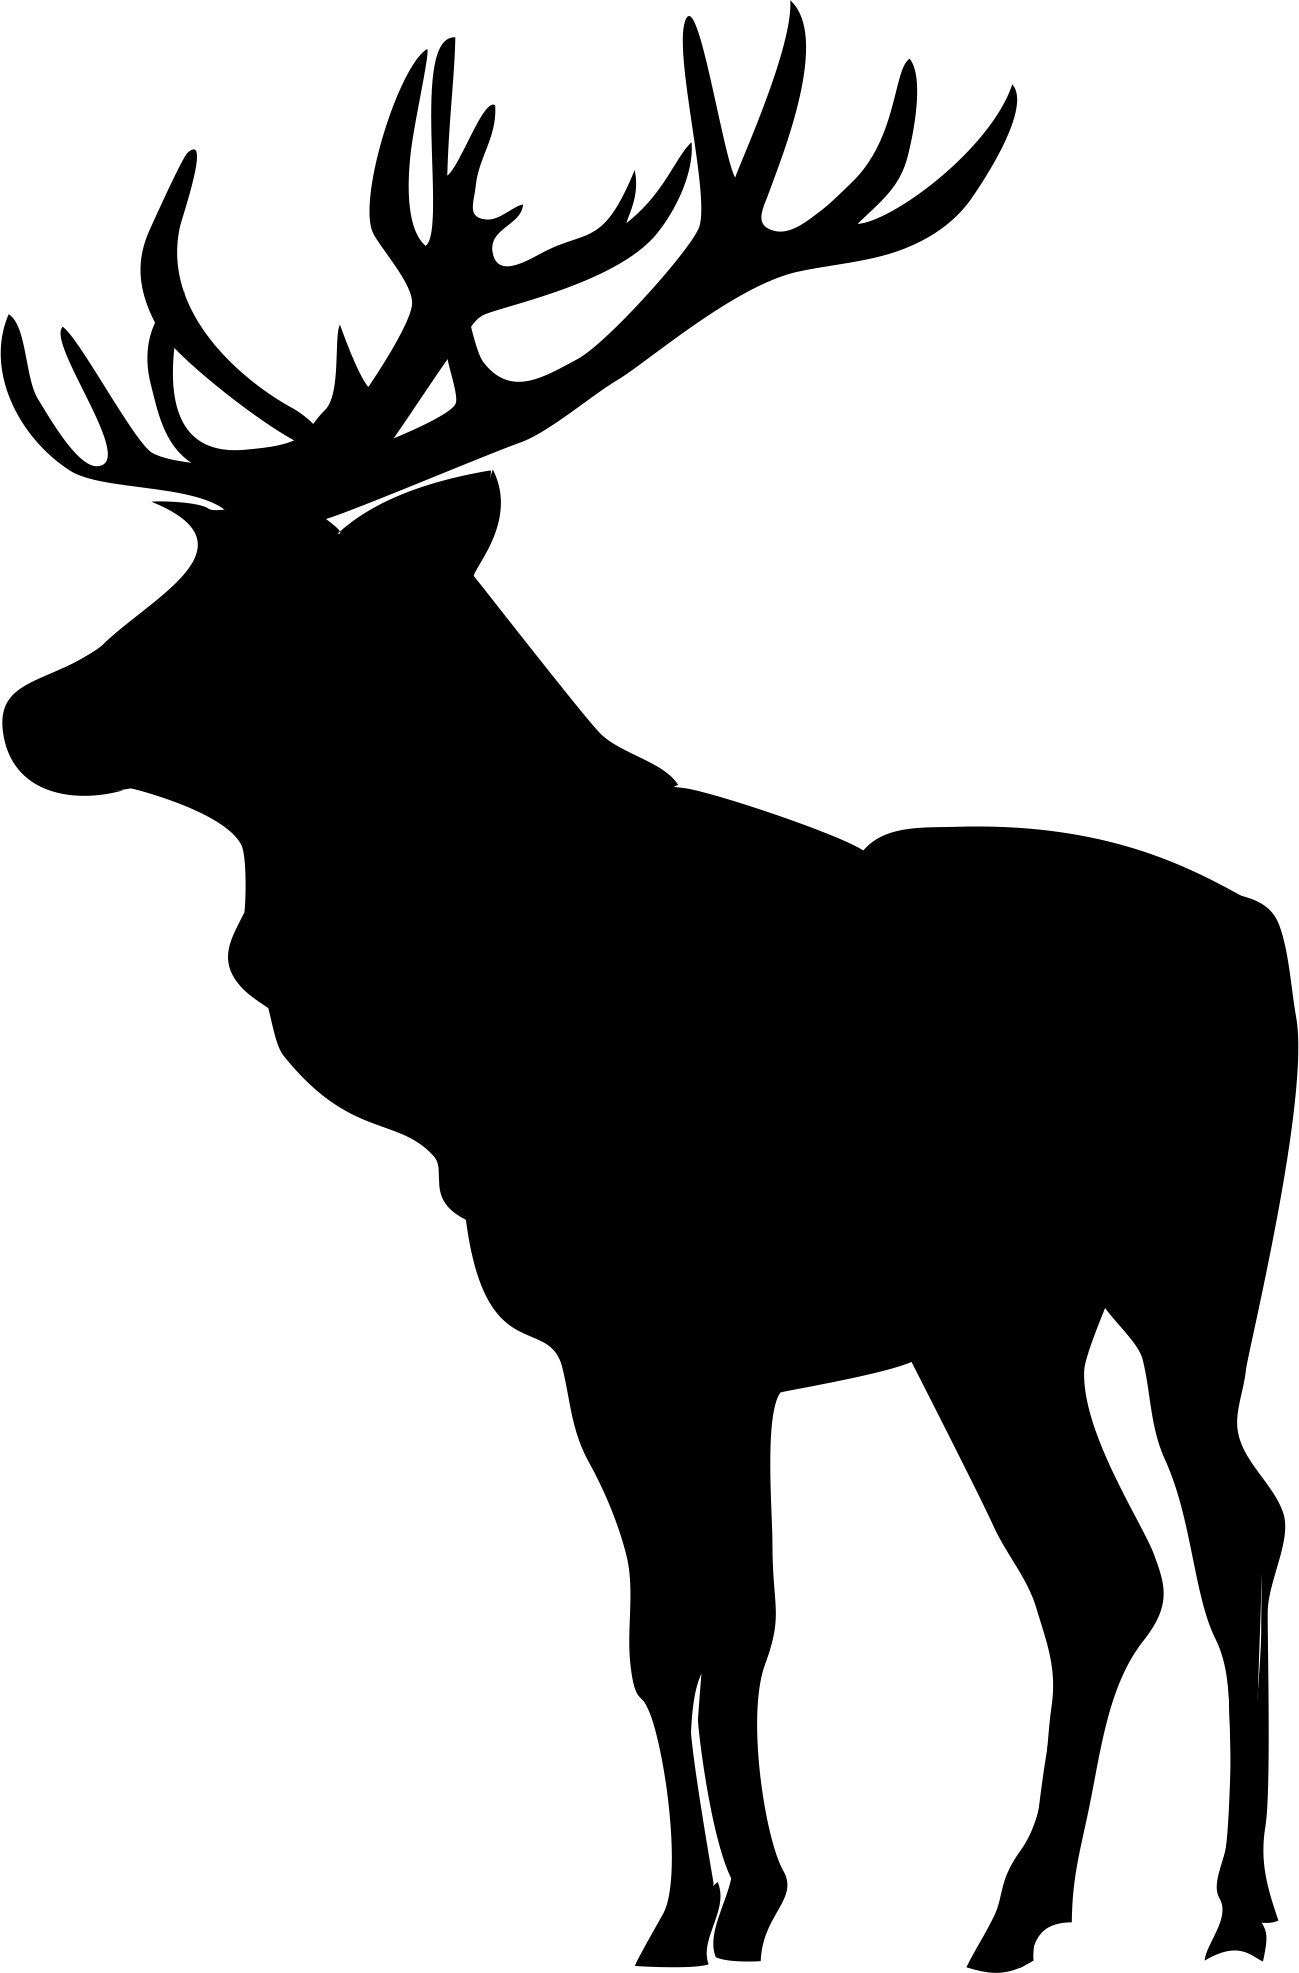 clipart black and white library Elk Head Silhouette Clip Art at GetDrawings